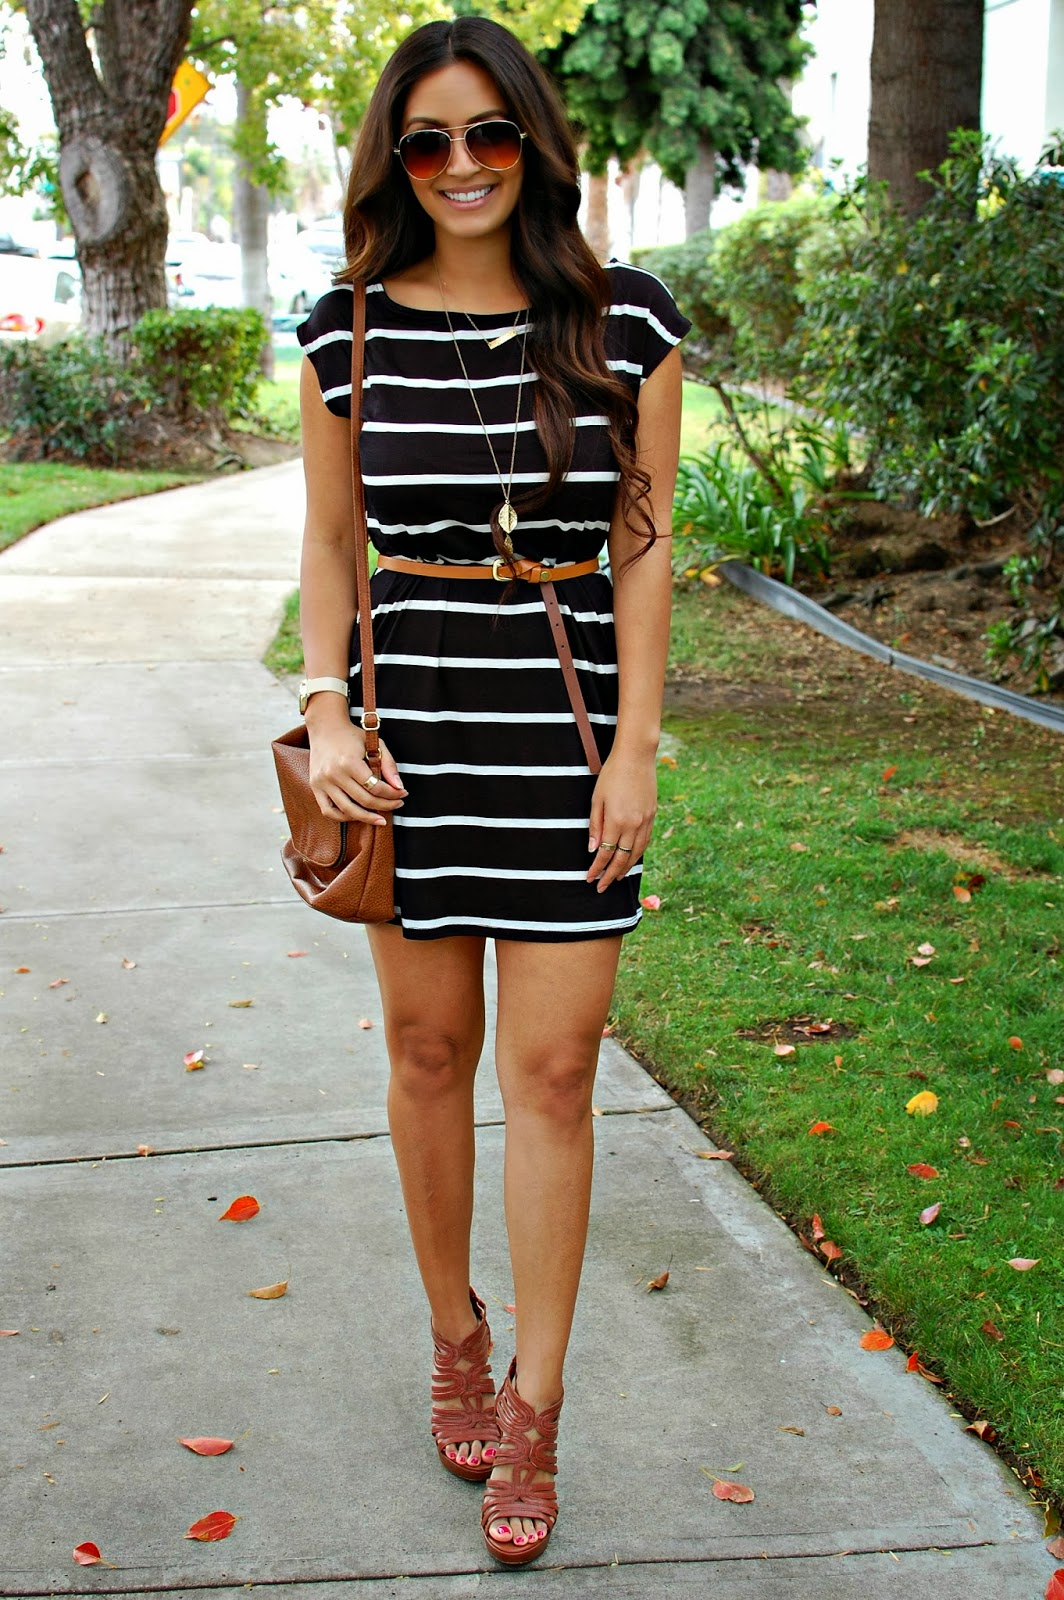 Vanessa Balli: How to Wear Black and Tan